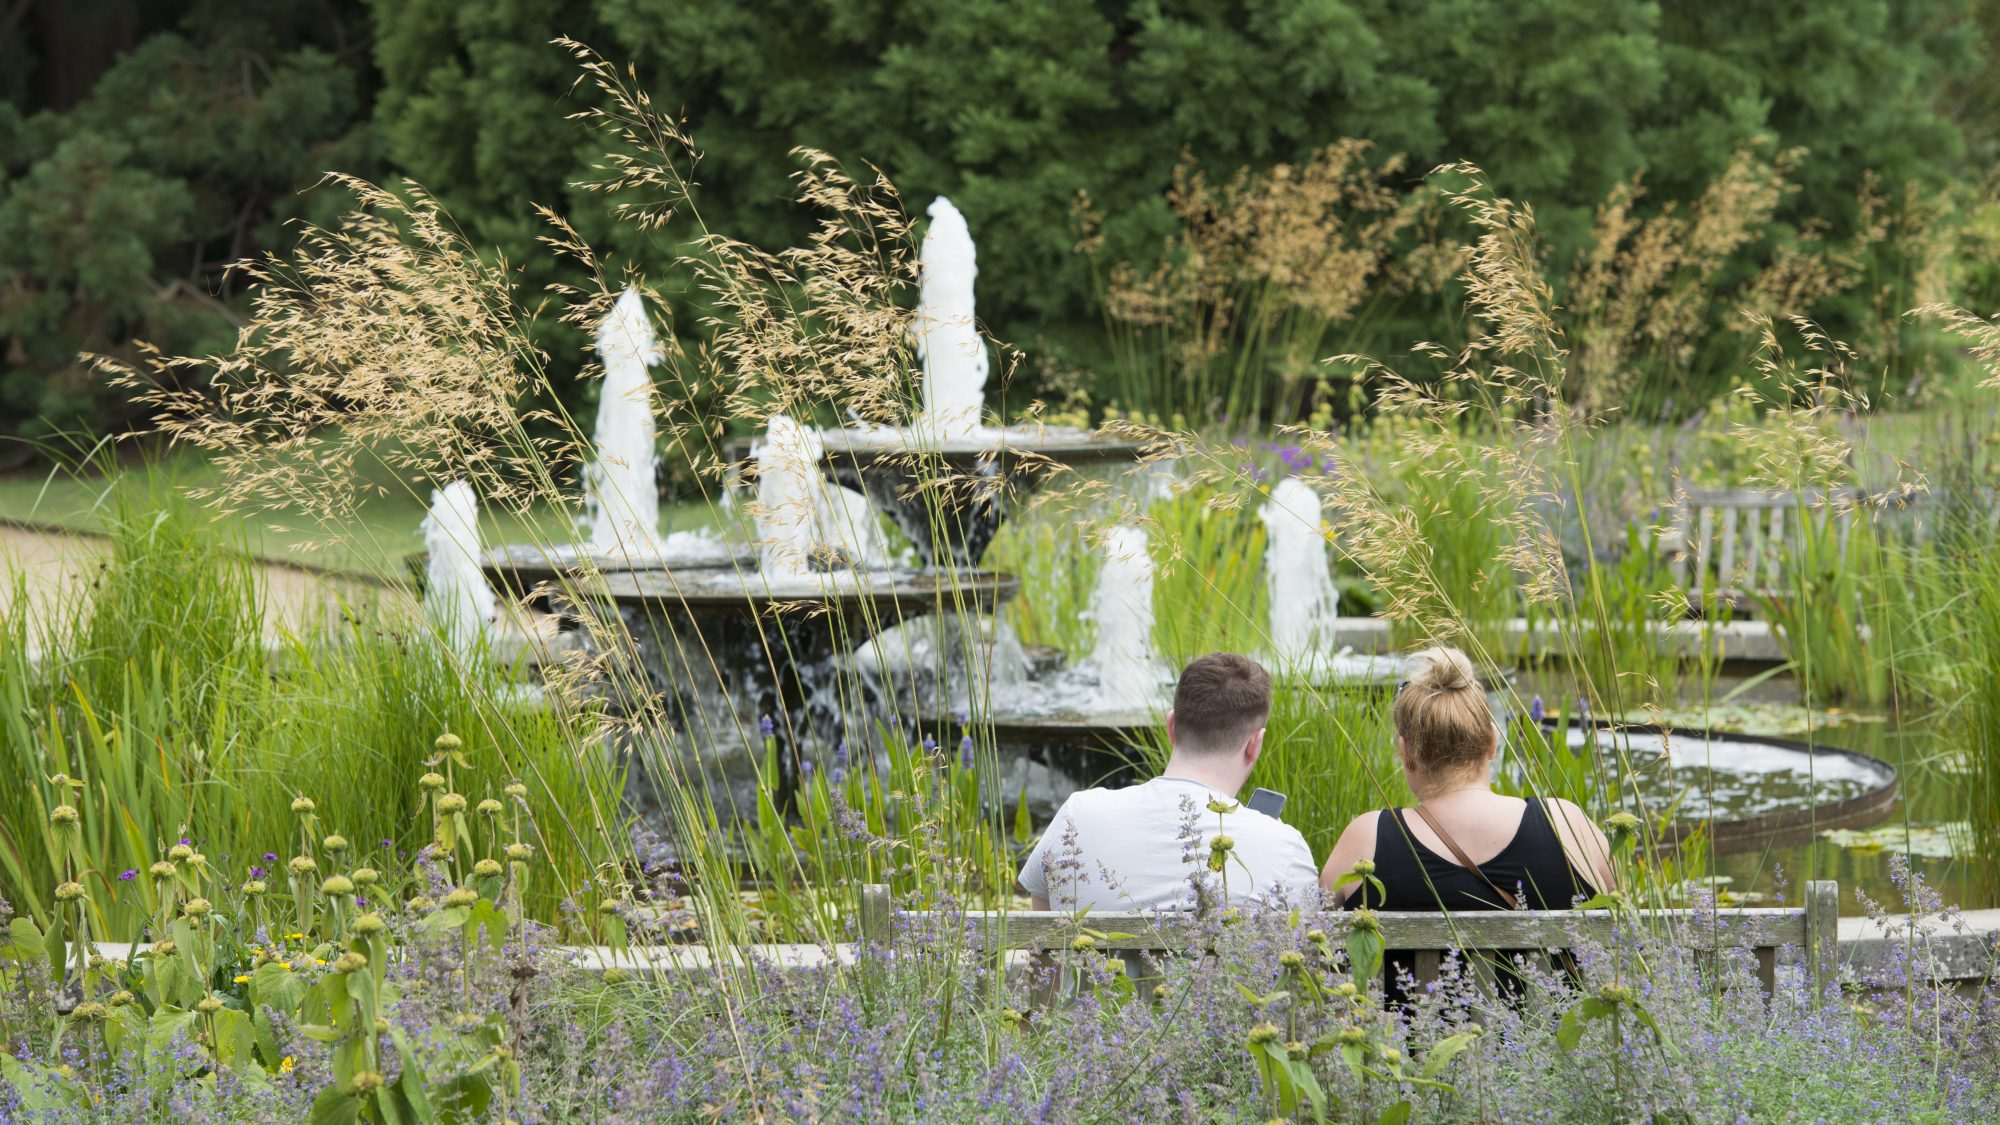 Visitors can enjoy our varied landscape including the iconic fountain, designed by David Mellor (1930-2009).